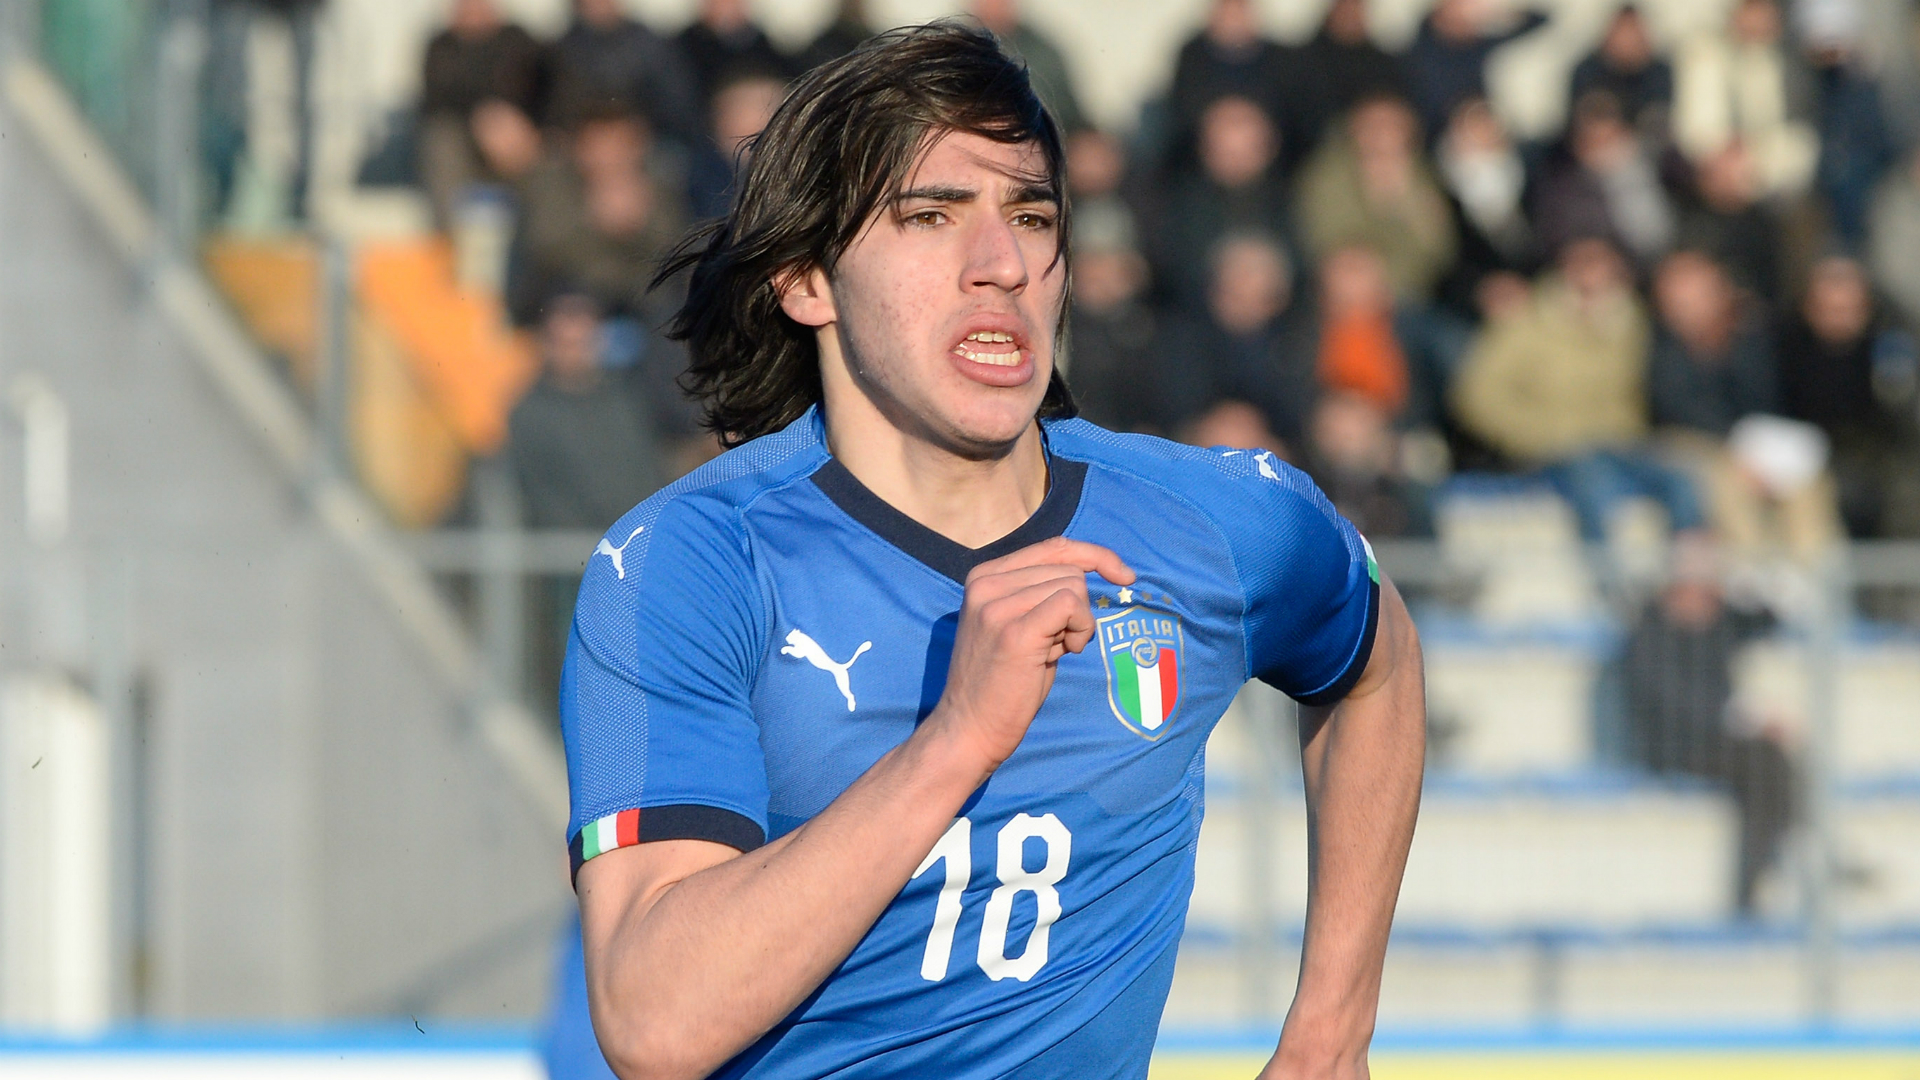 'New Pirlo' Tonali wins first Italy call-up